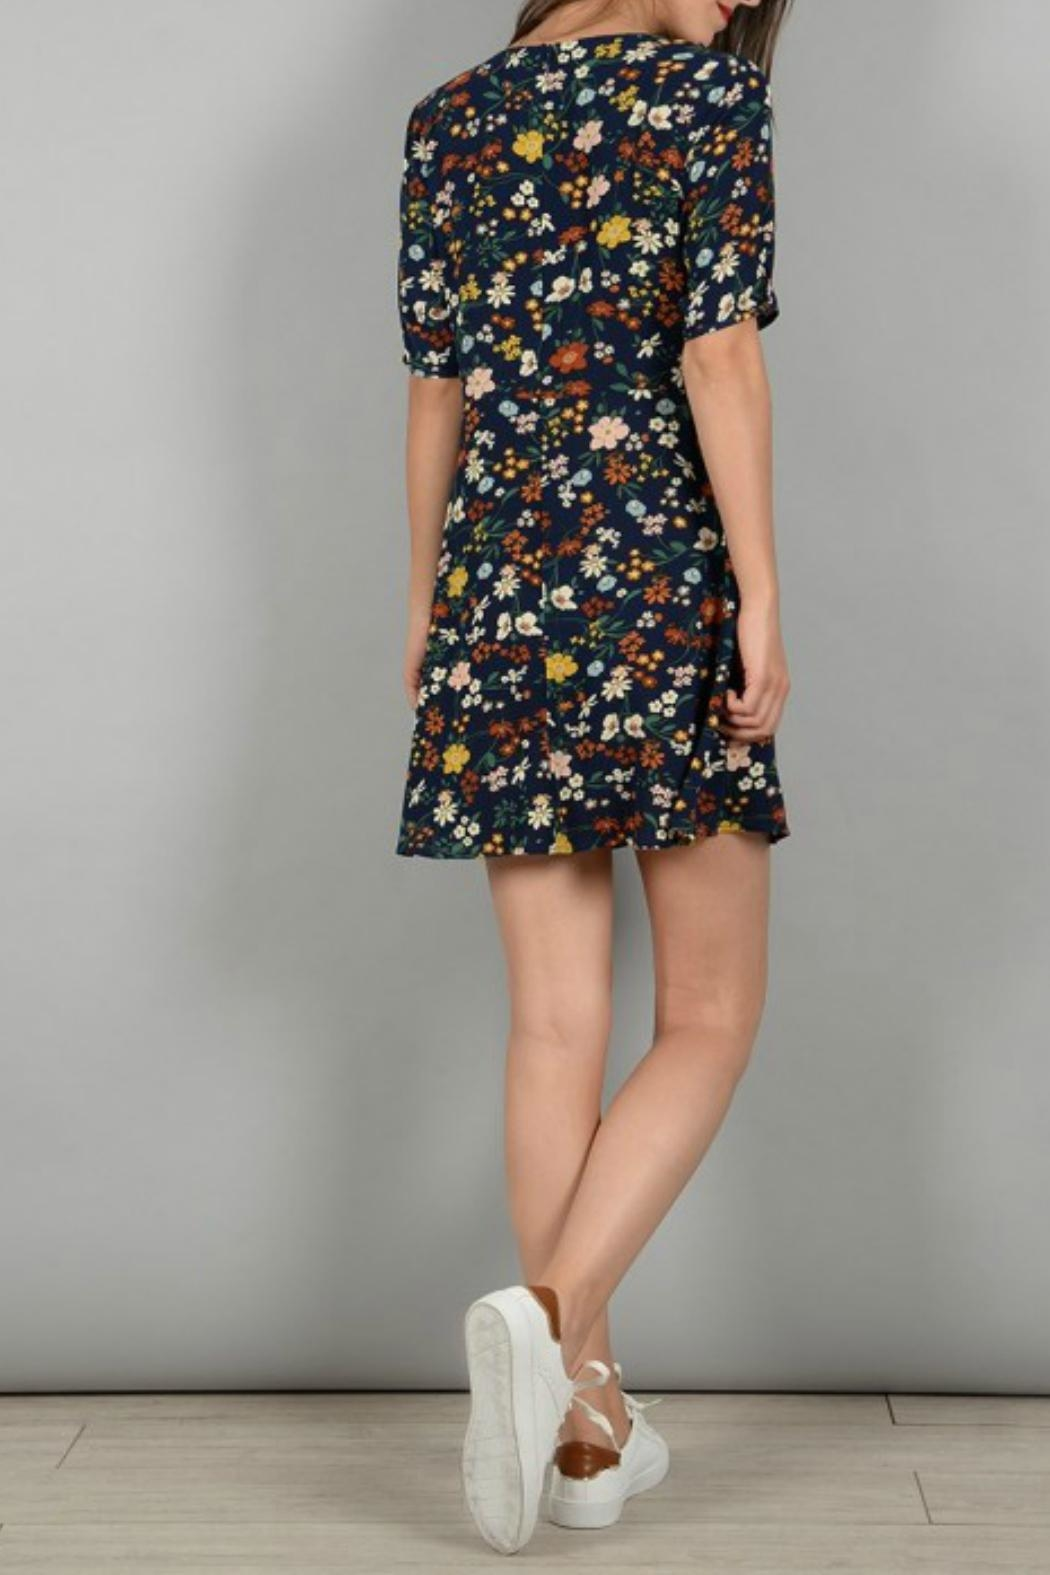 Molly Bracken Floral Print Dress - Side Cropped Image